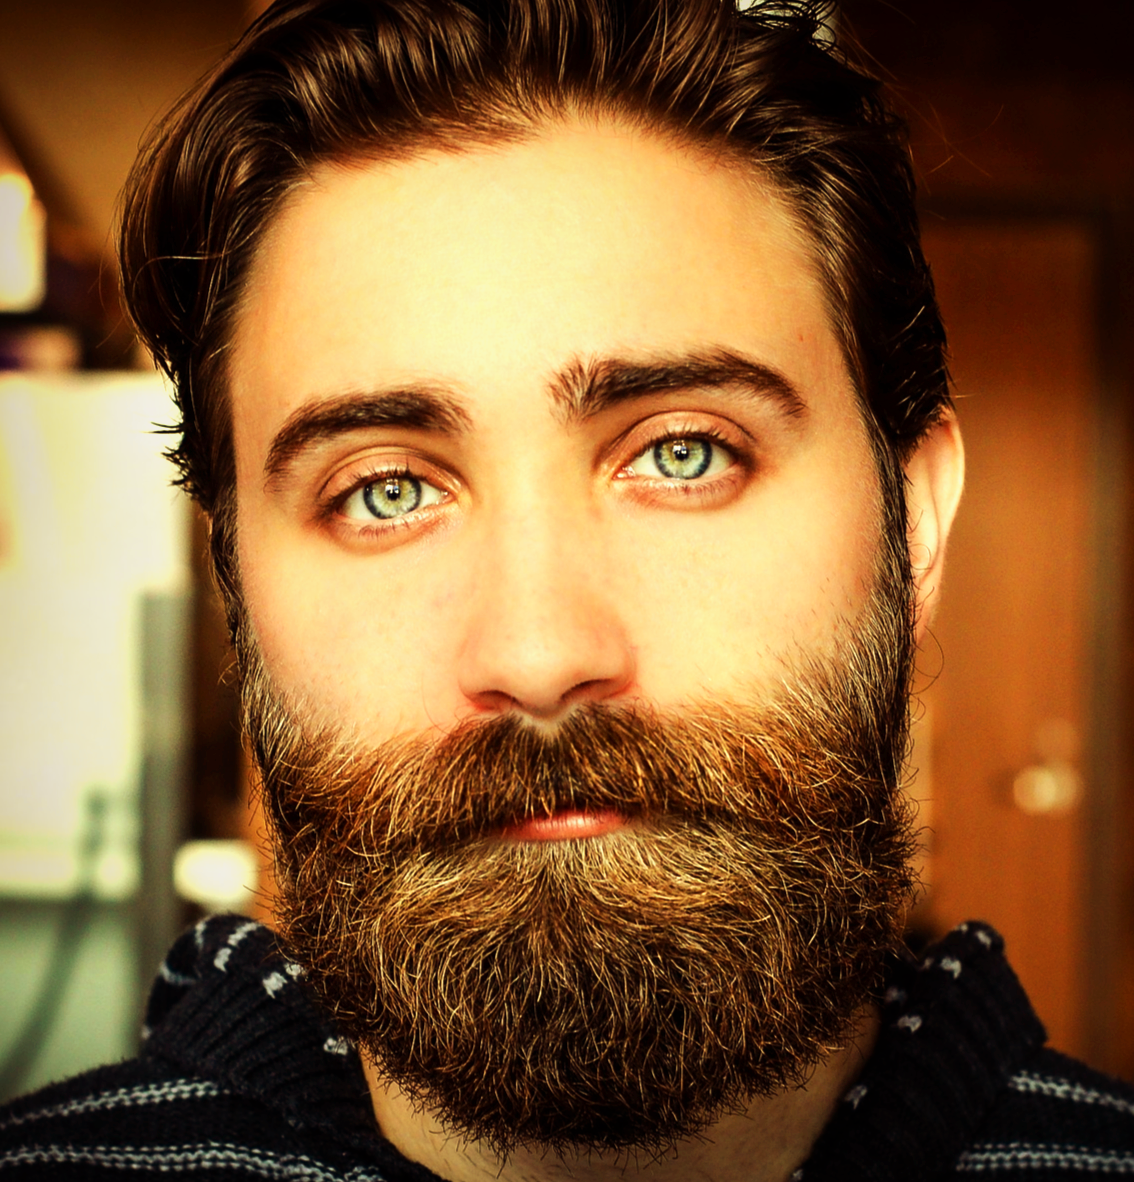 beard dating Men with beards - free dating, singles and personals.